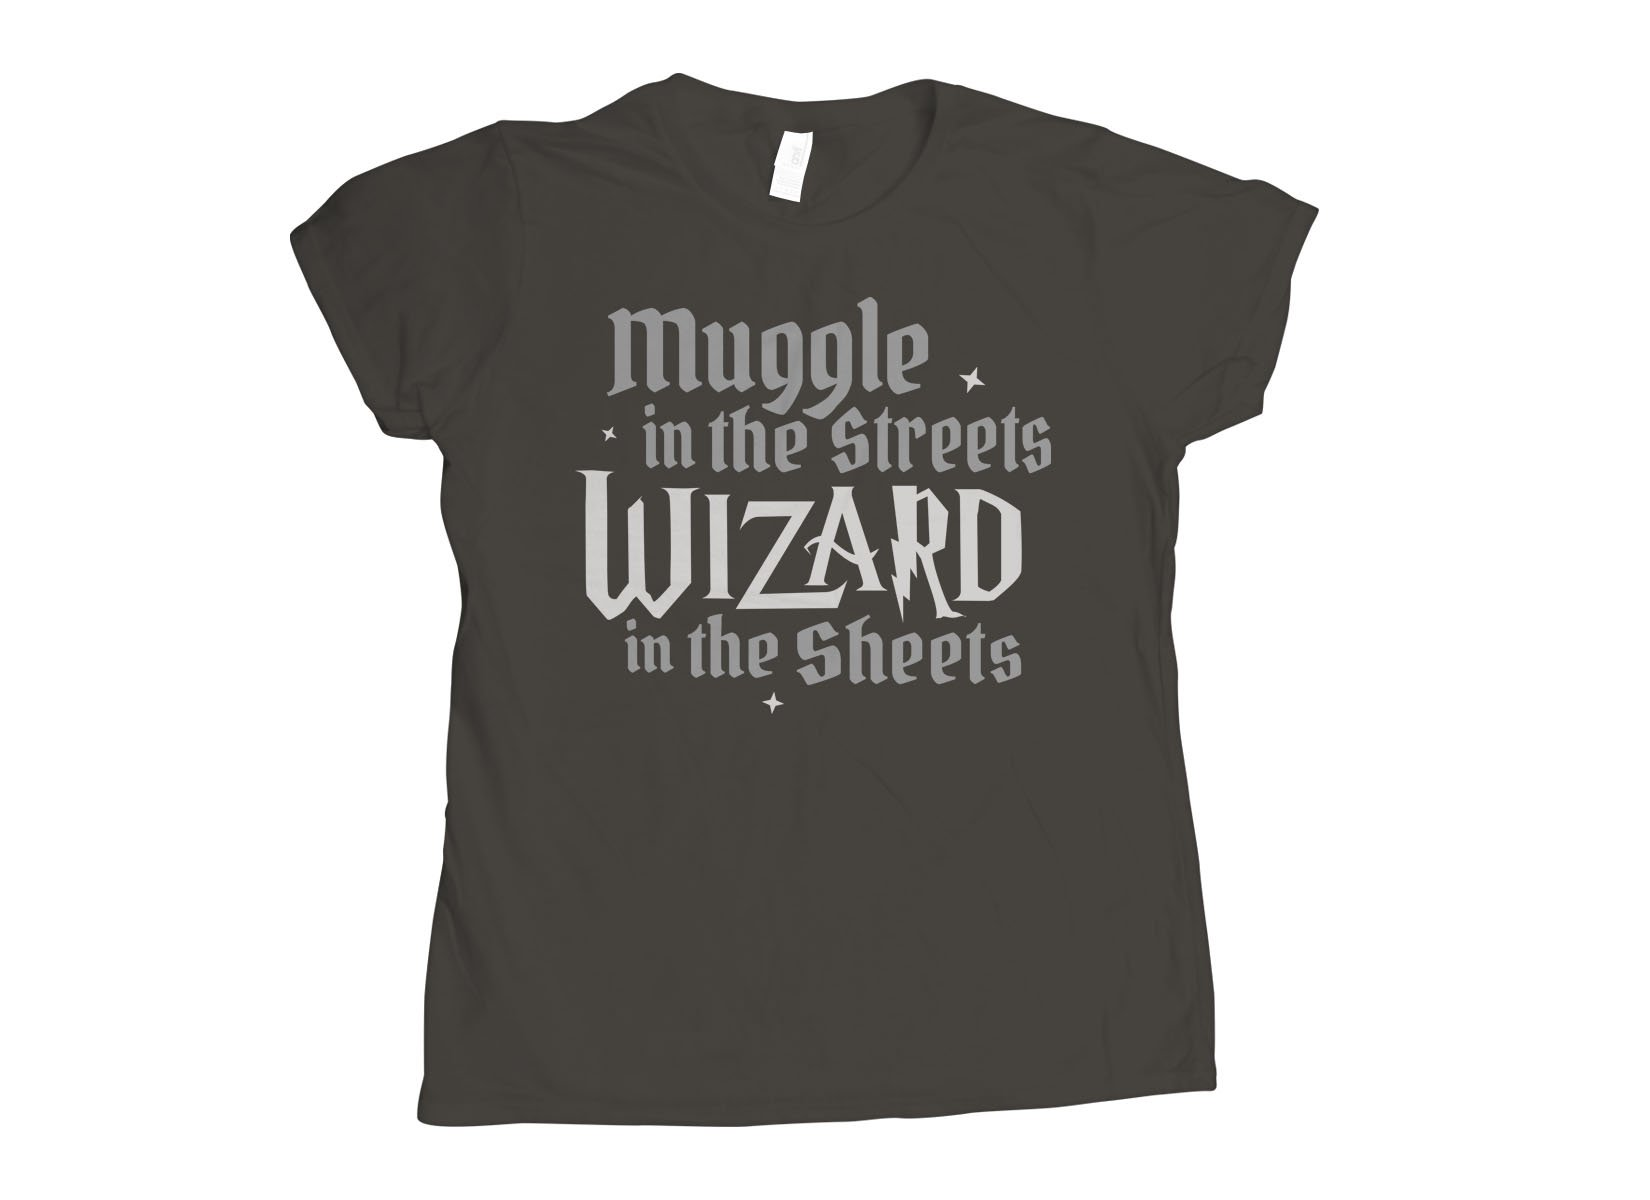 Muggle In The Streets, Wizard In The Sheets on Womens T-Shirt